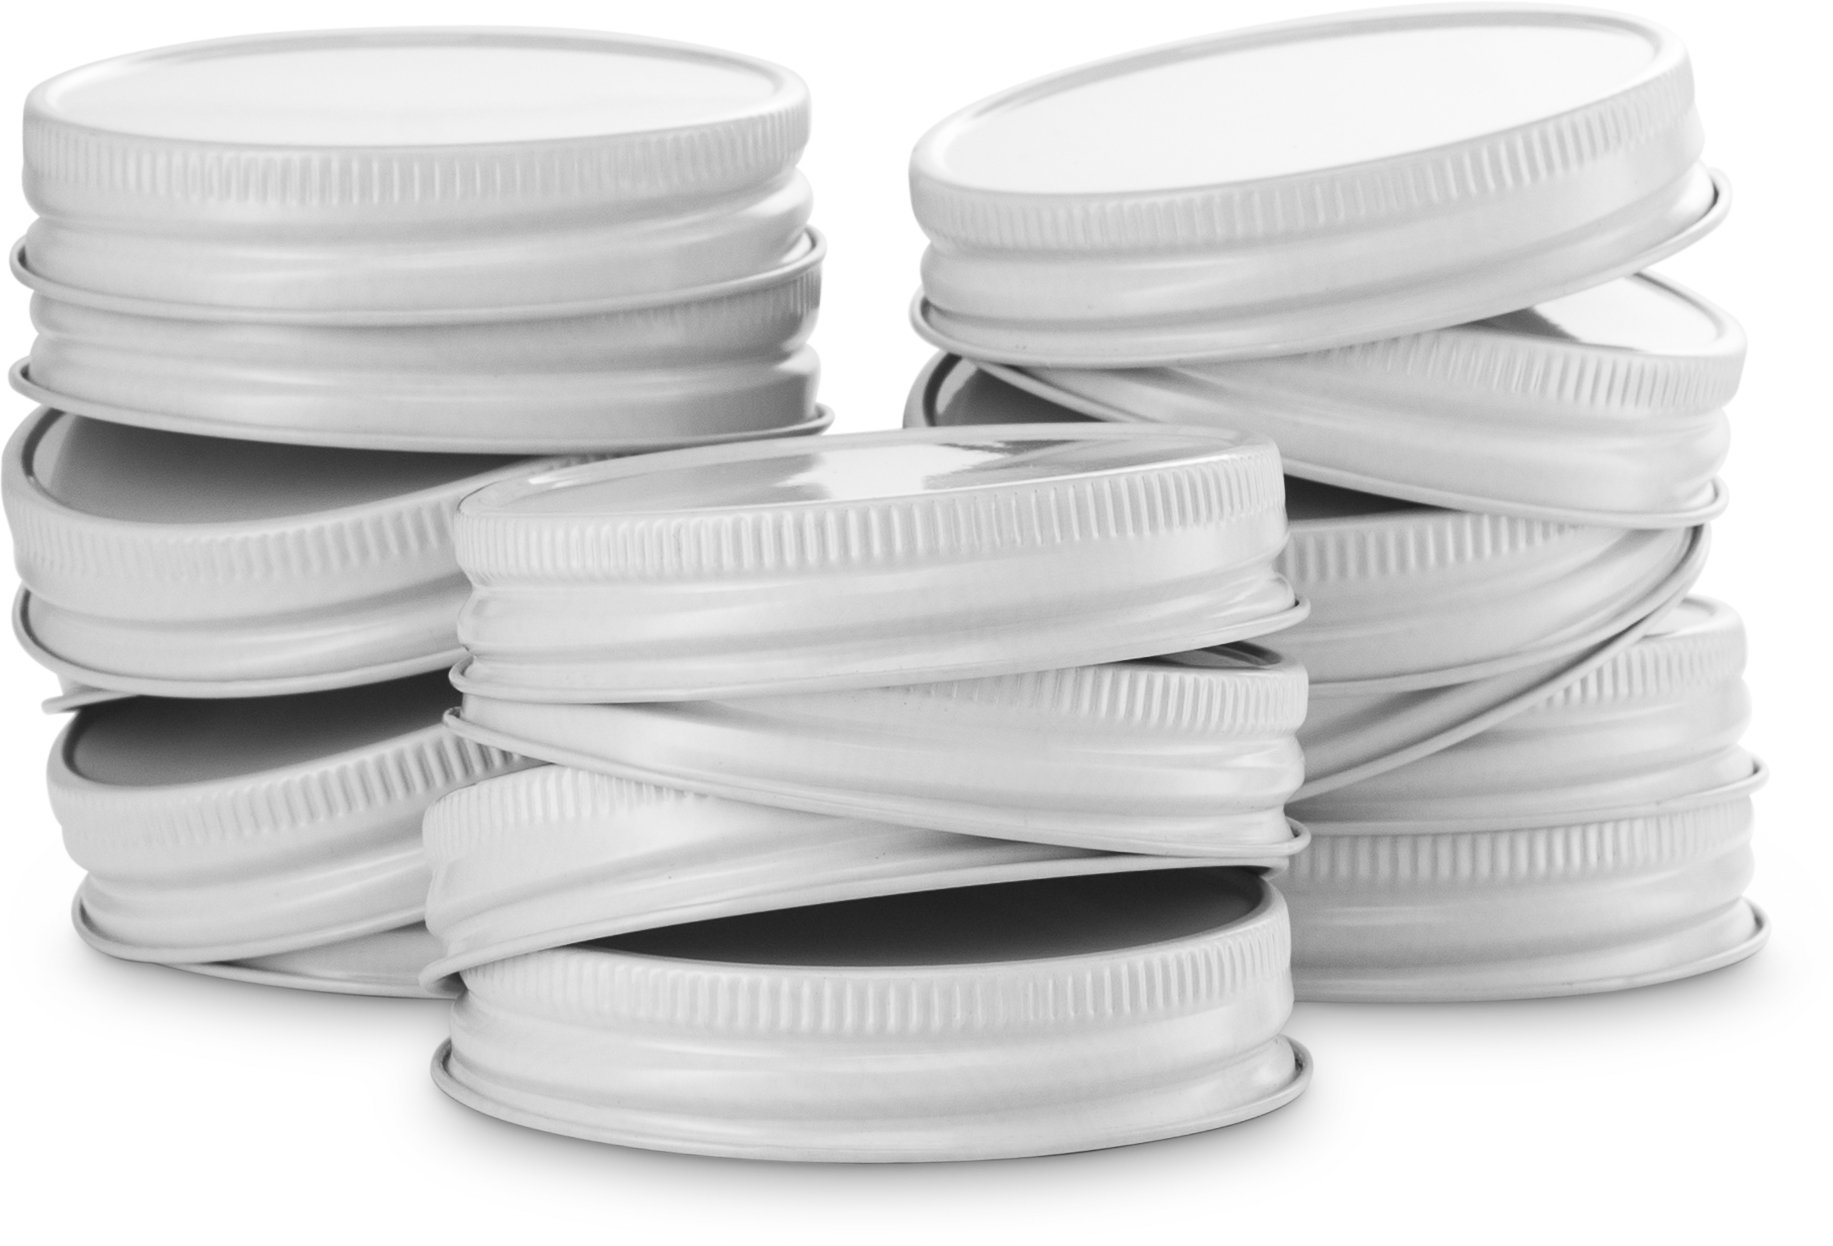 KooK Mason Jar Lids Regular Mouth, Leak Proof and Secure, Red, Gold, Silver, White, 16 pack (White)